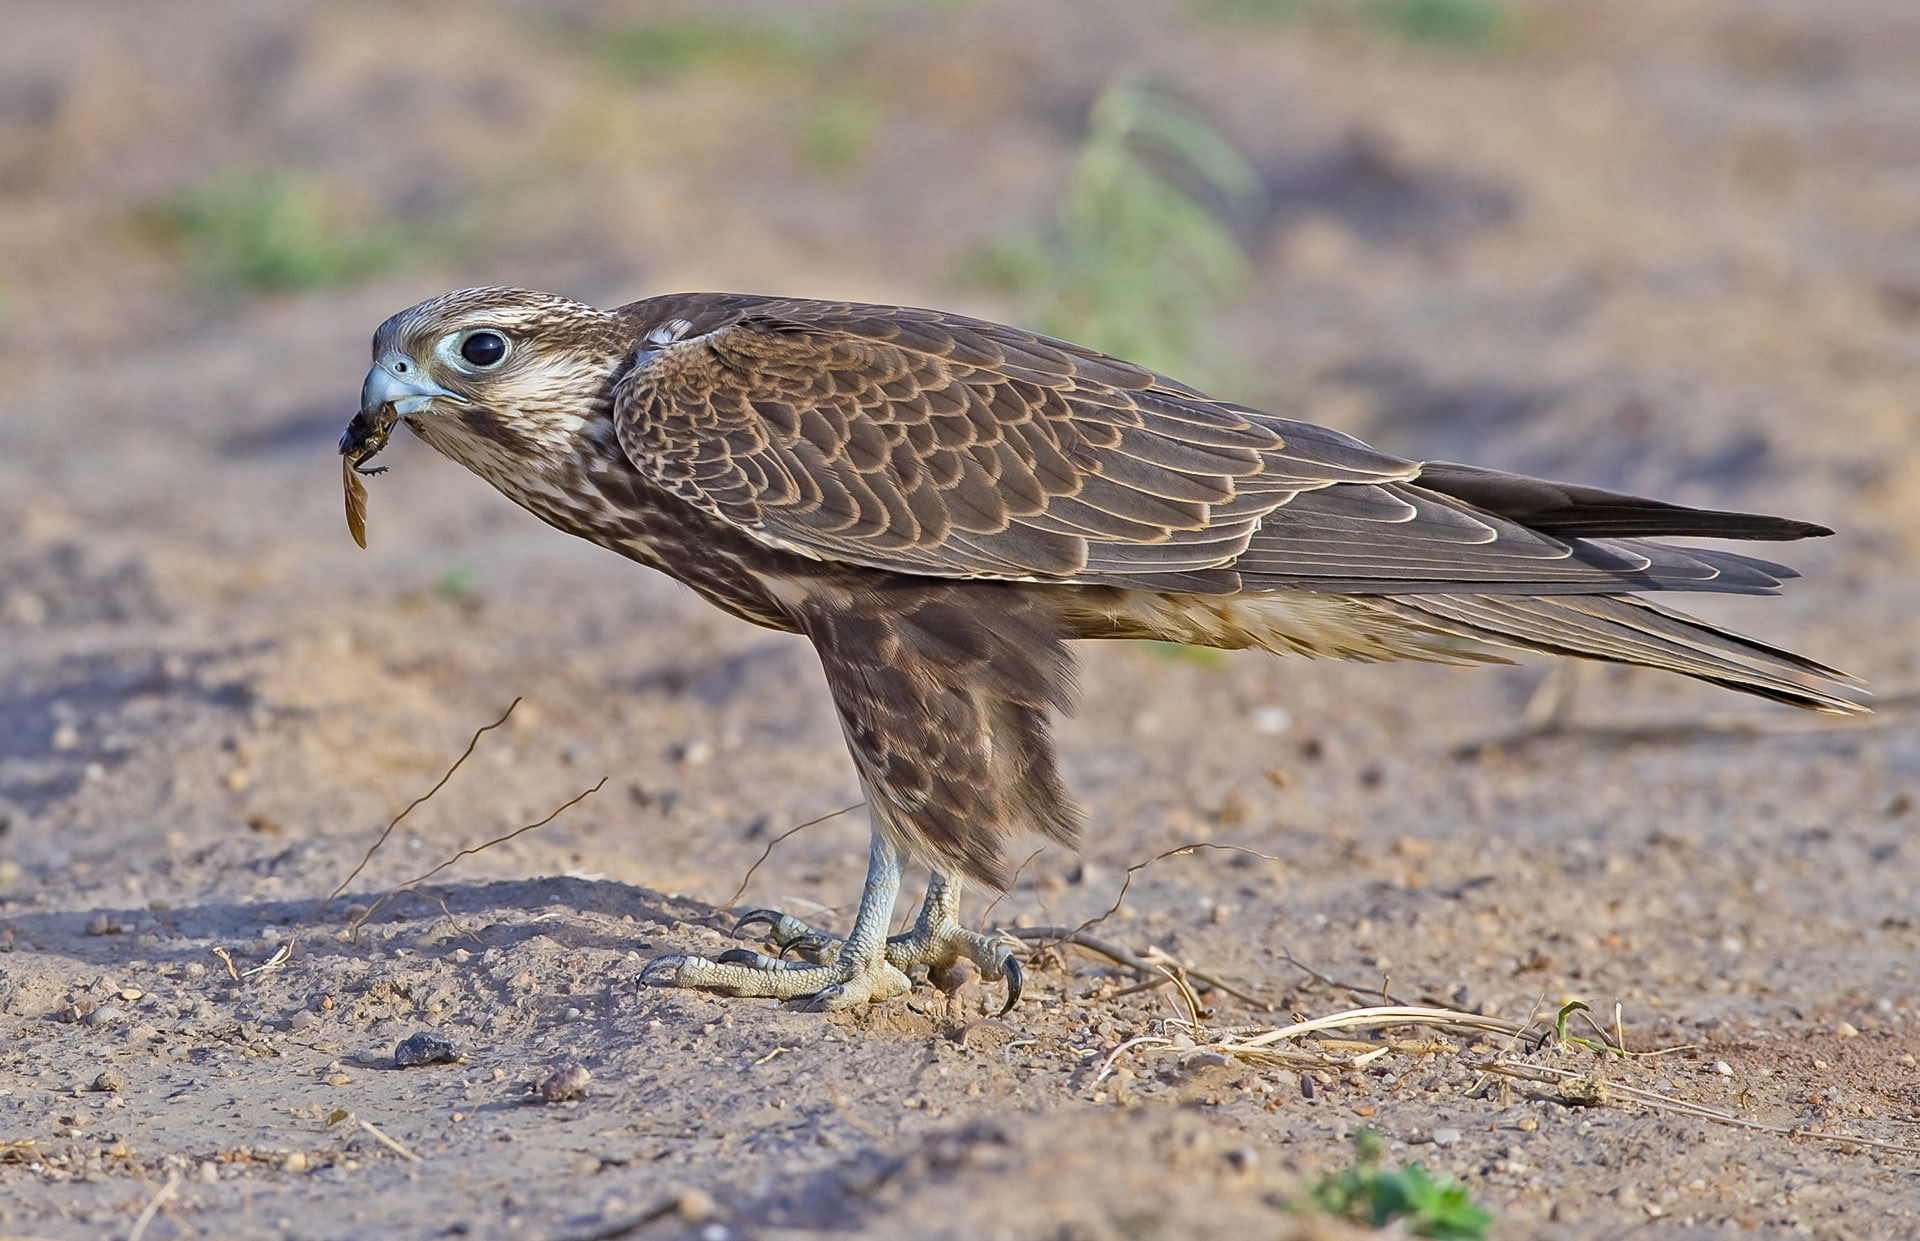 """In a research paper on breeding laggar falcons, Amith Rao and Kushal R Adaki, note that they """"saw the adults interacting with the juveniles in what seemed to be a training session. The adult birds would pick up twigs from the ground and fly to a height of one metre and drop the twig. The juveniles would try doing the same by holding the twigs in their bills, or talons — imitating a hunt."""" Later, they write, the juveniles were observed hunting babblers, eating lizards, even attacking crows. Photo: Dhritiman Mukherjee"""